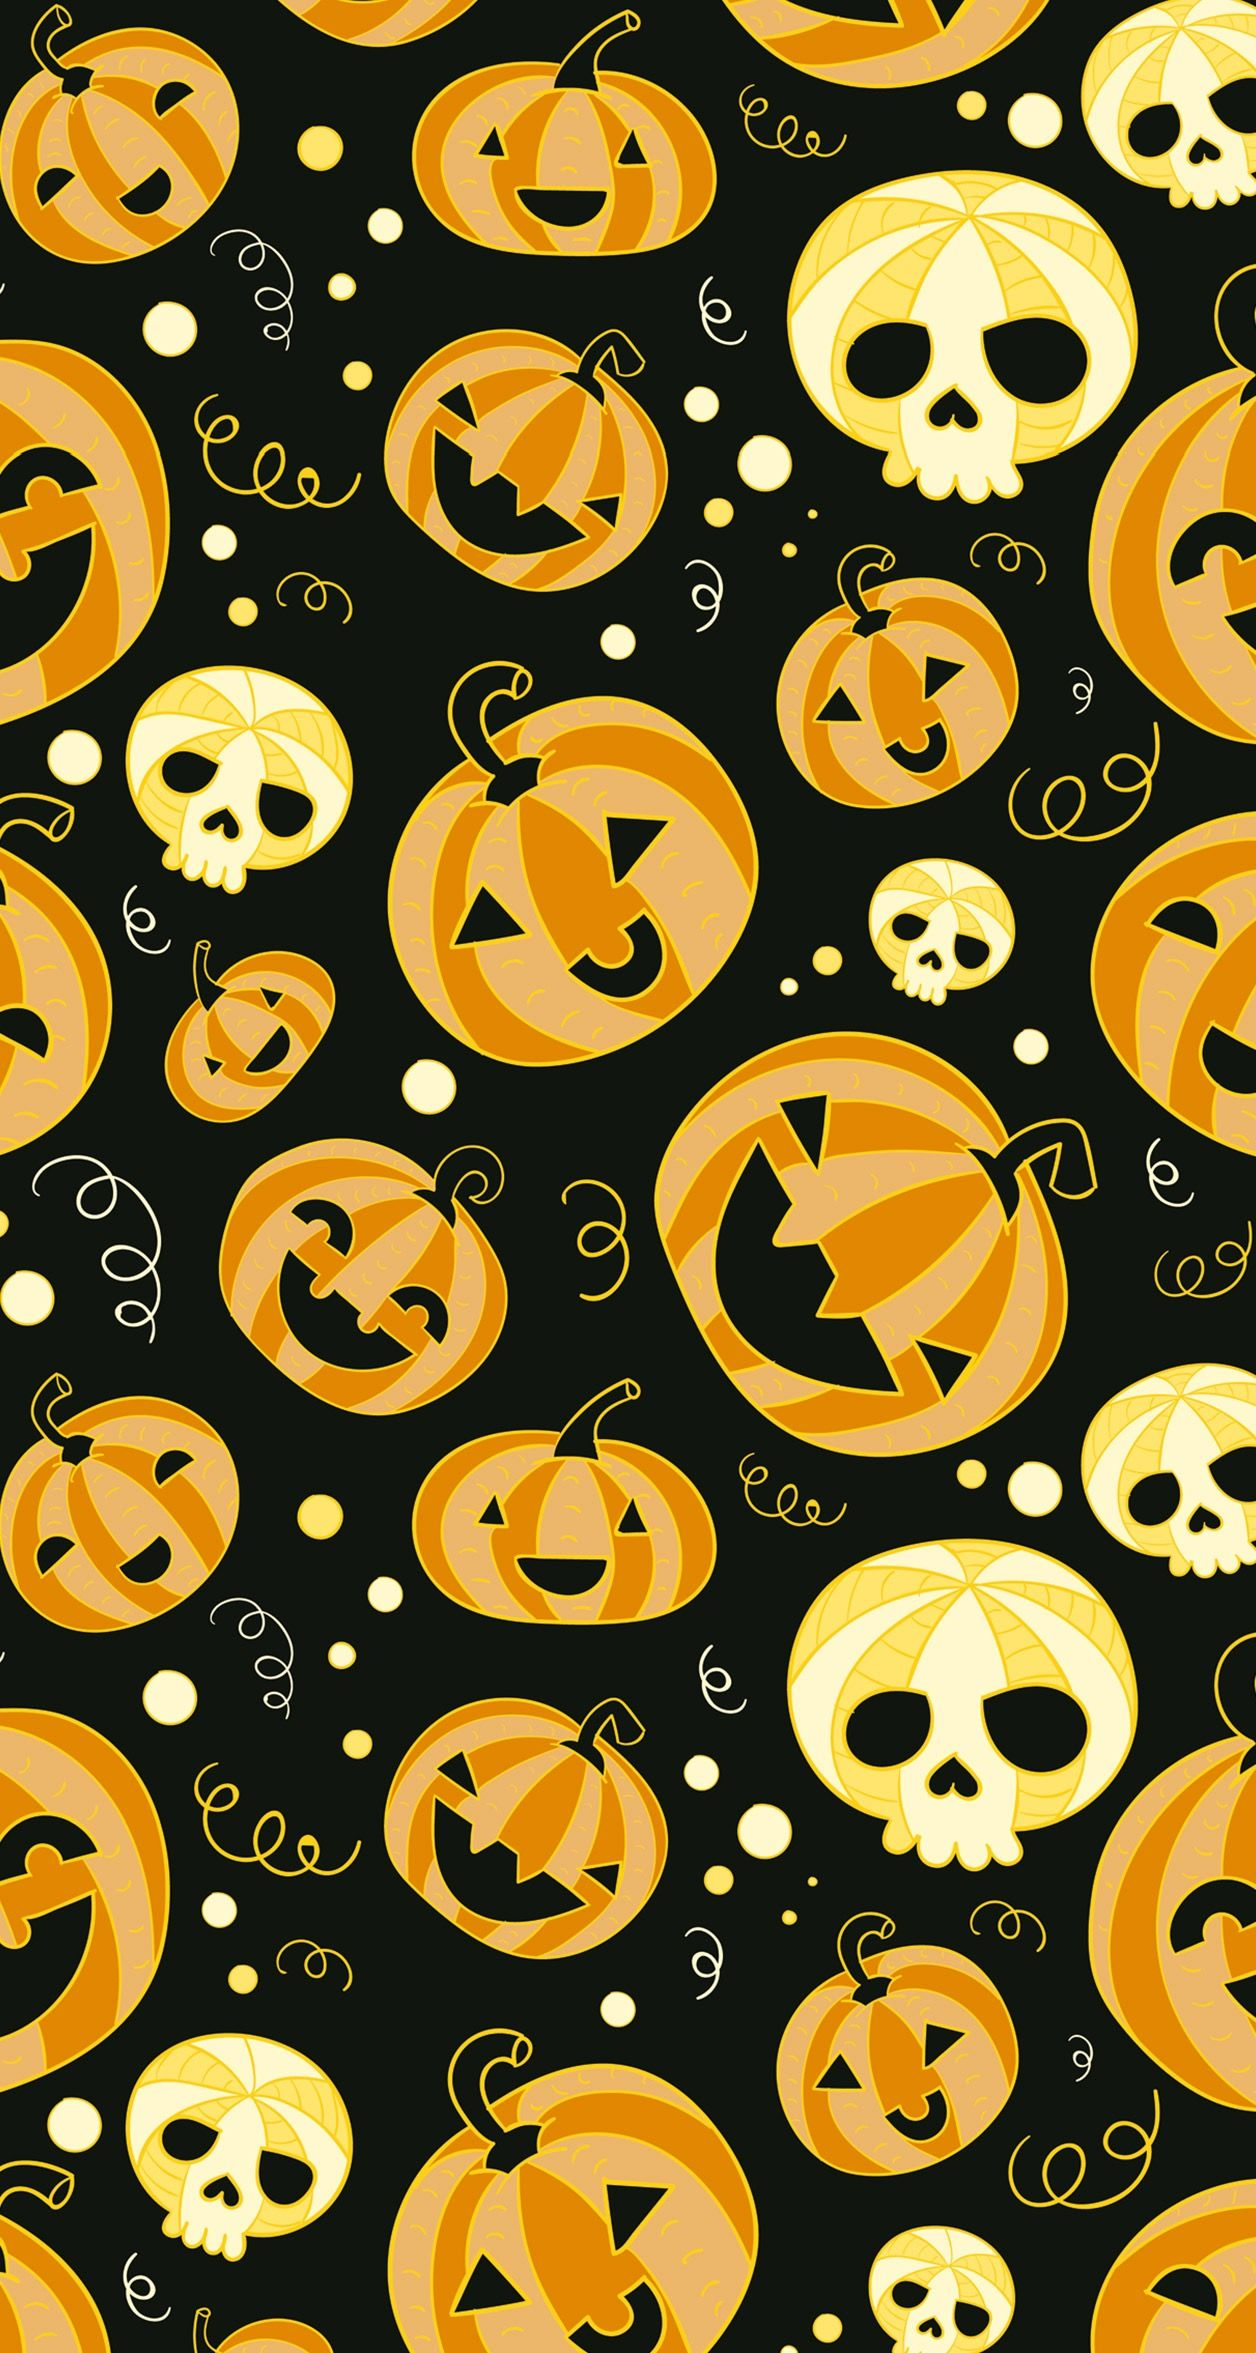 Download Wallpaper High Quality Halloween - 1a4dbe7ea177a1f2c2345be756667ca9  Snapshot_468294.jpg